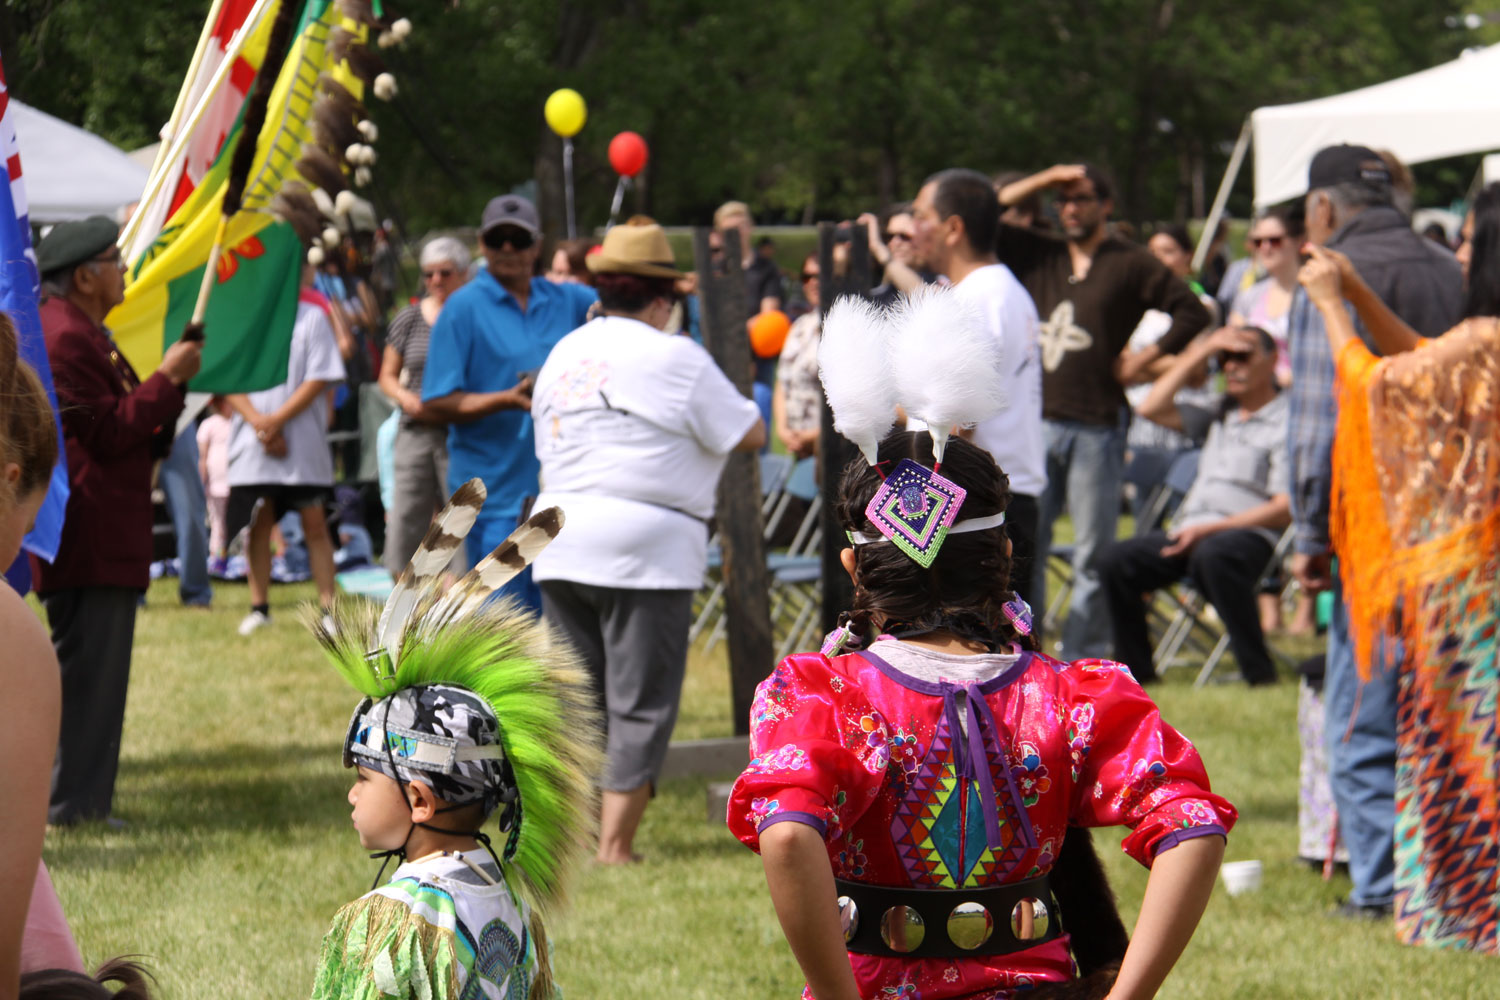 National Aboriginal Day brings out thousands